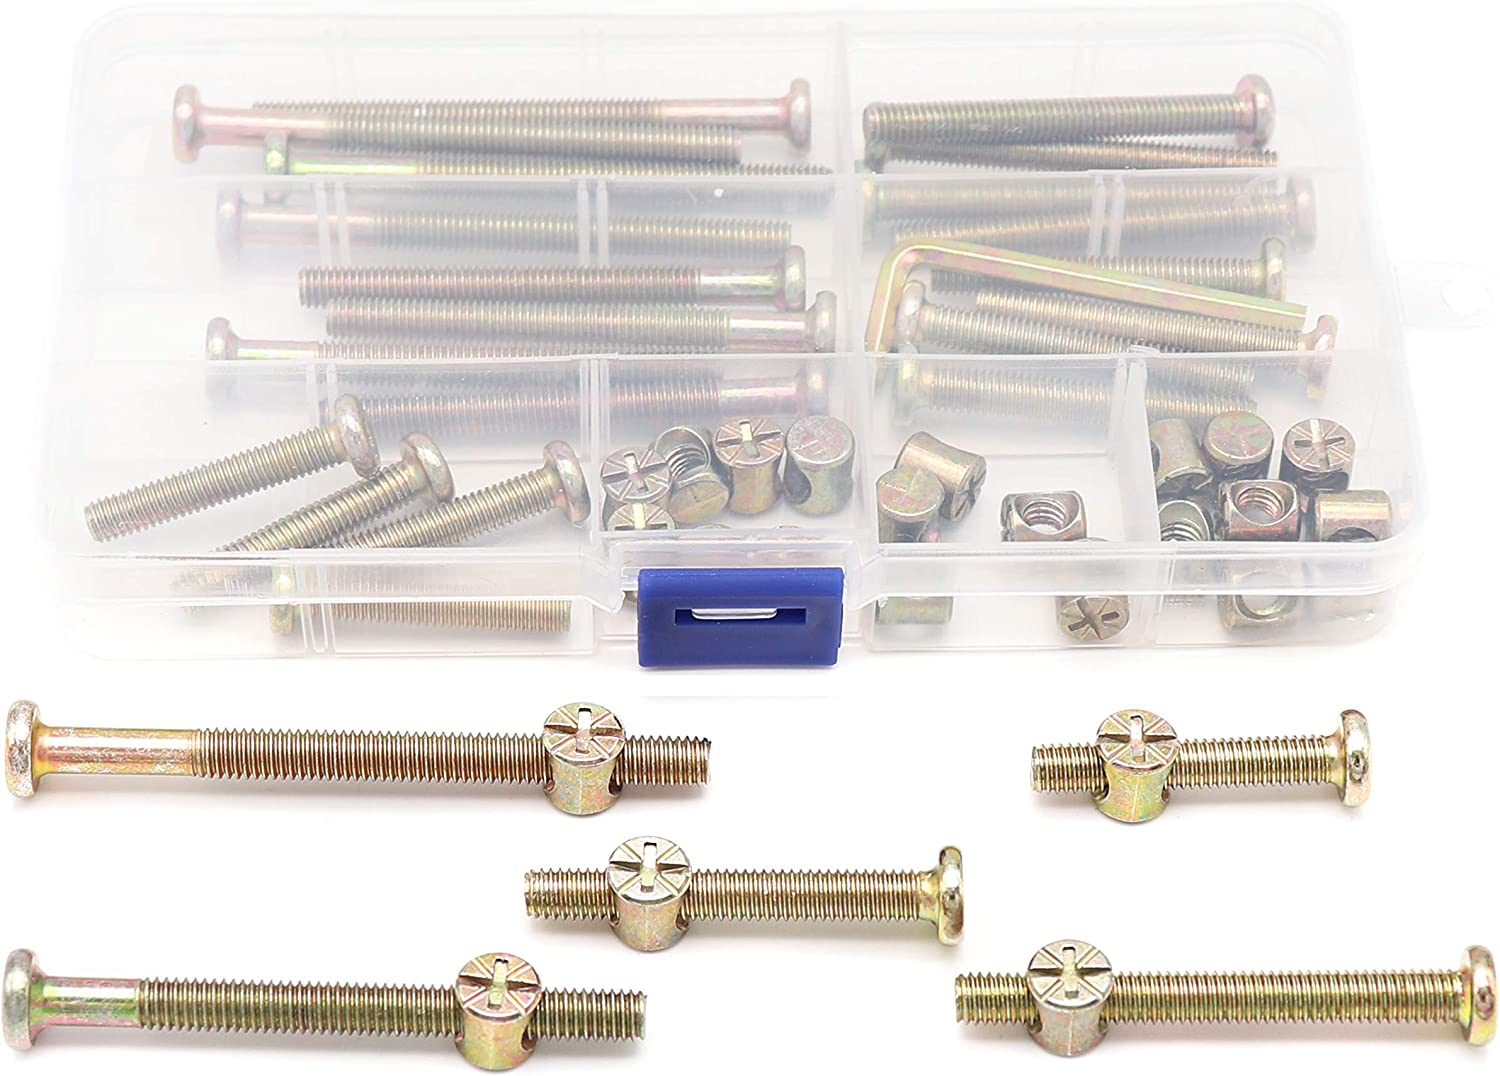 All items in the store binifiMux Baby Bed Crib Screws Hardware Parts 50pcs Replacement Max 68% OFF